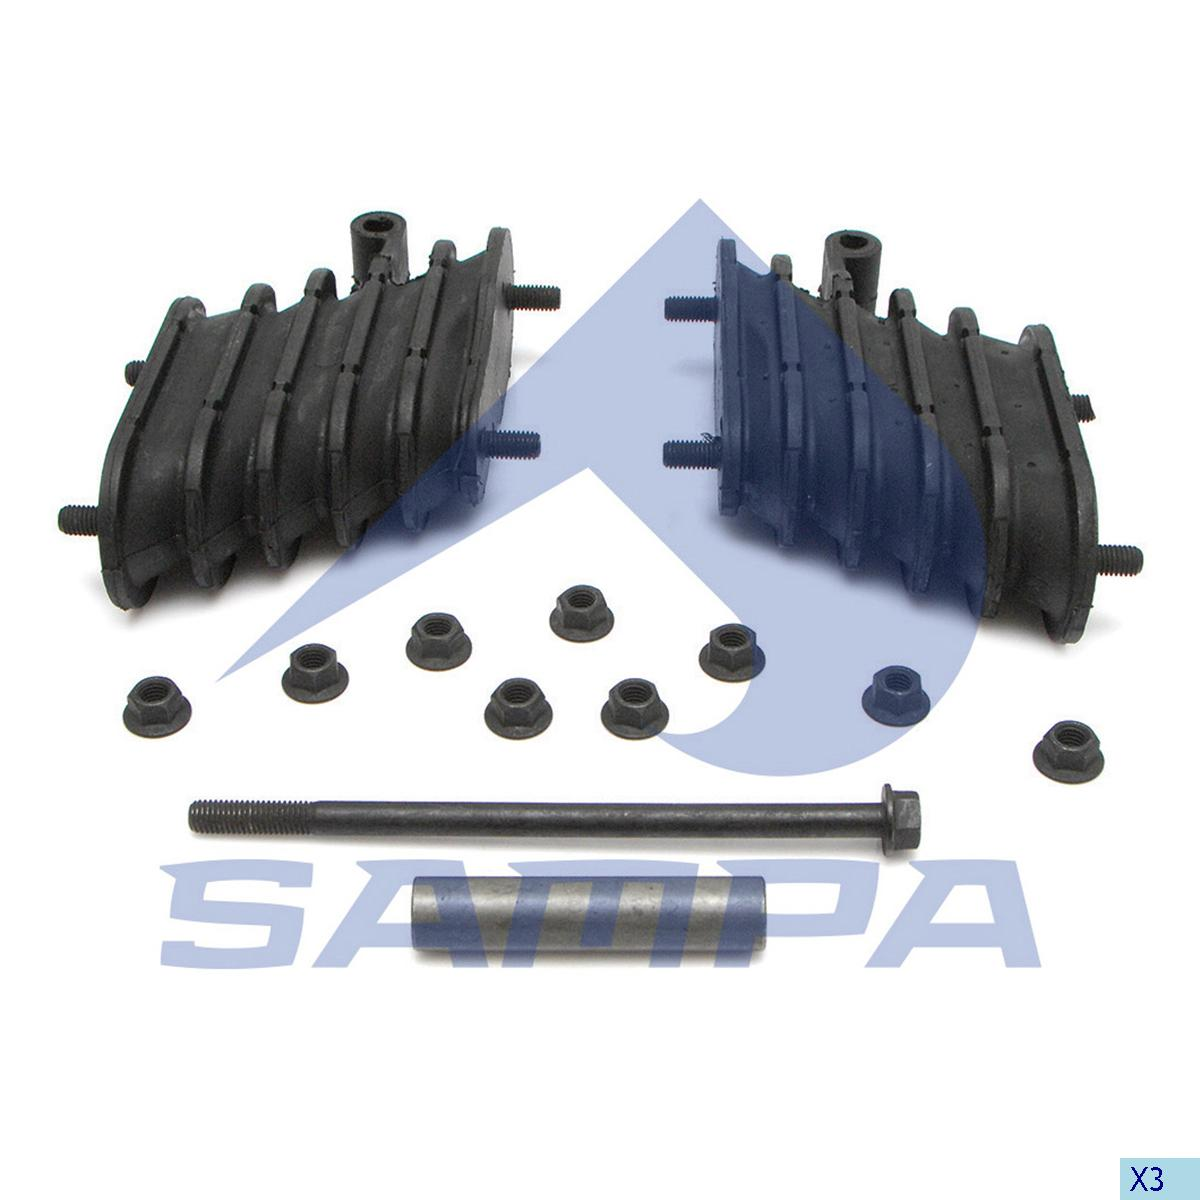 Repair Kit, Bogie Suspension, Hendrickson, Suspension